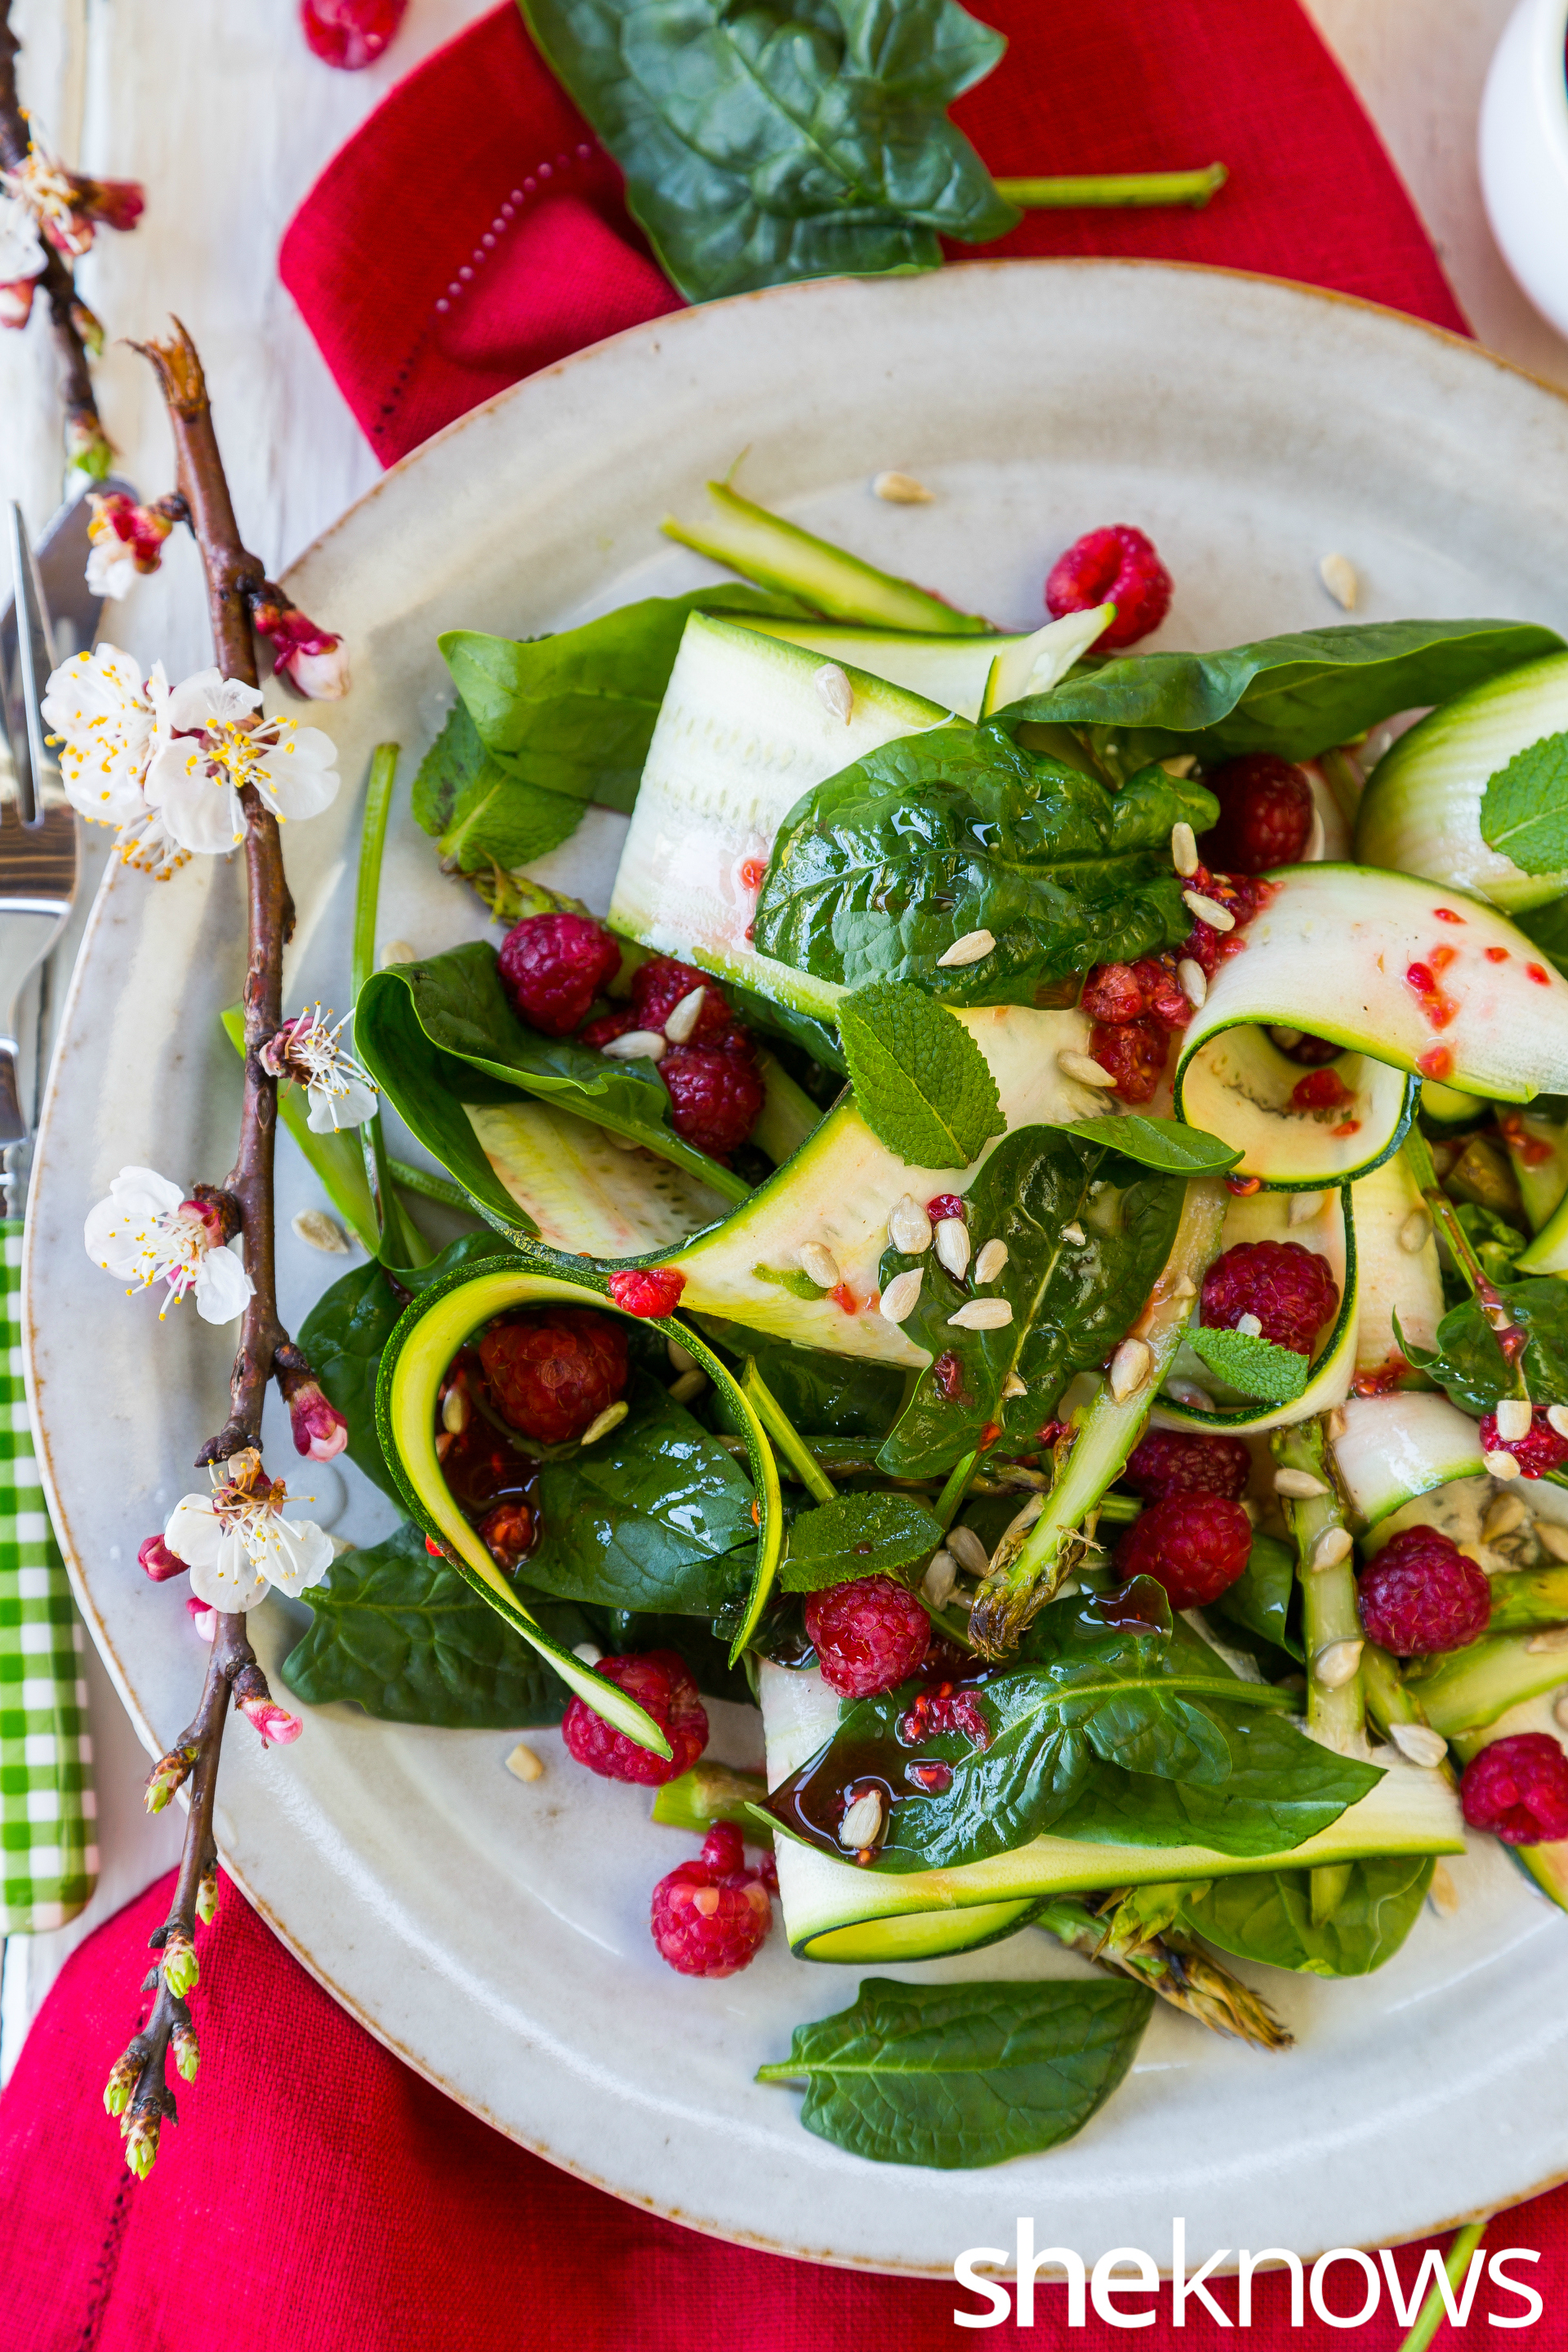 Spring green salad with crushed raspberry dressing